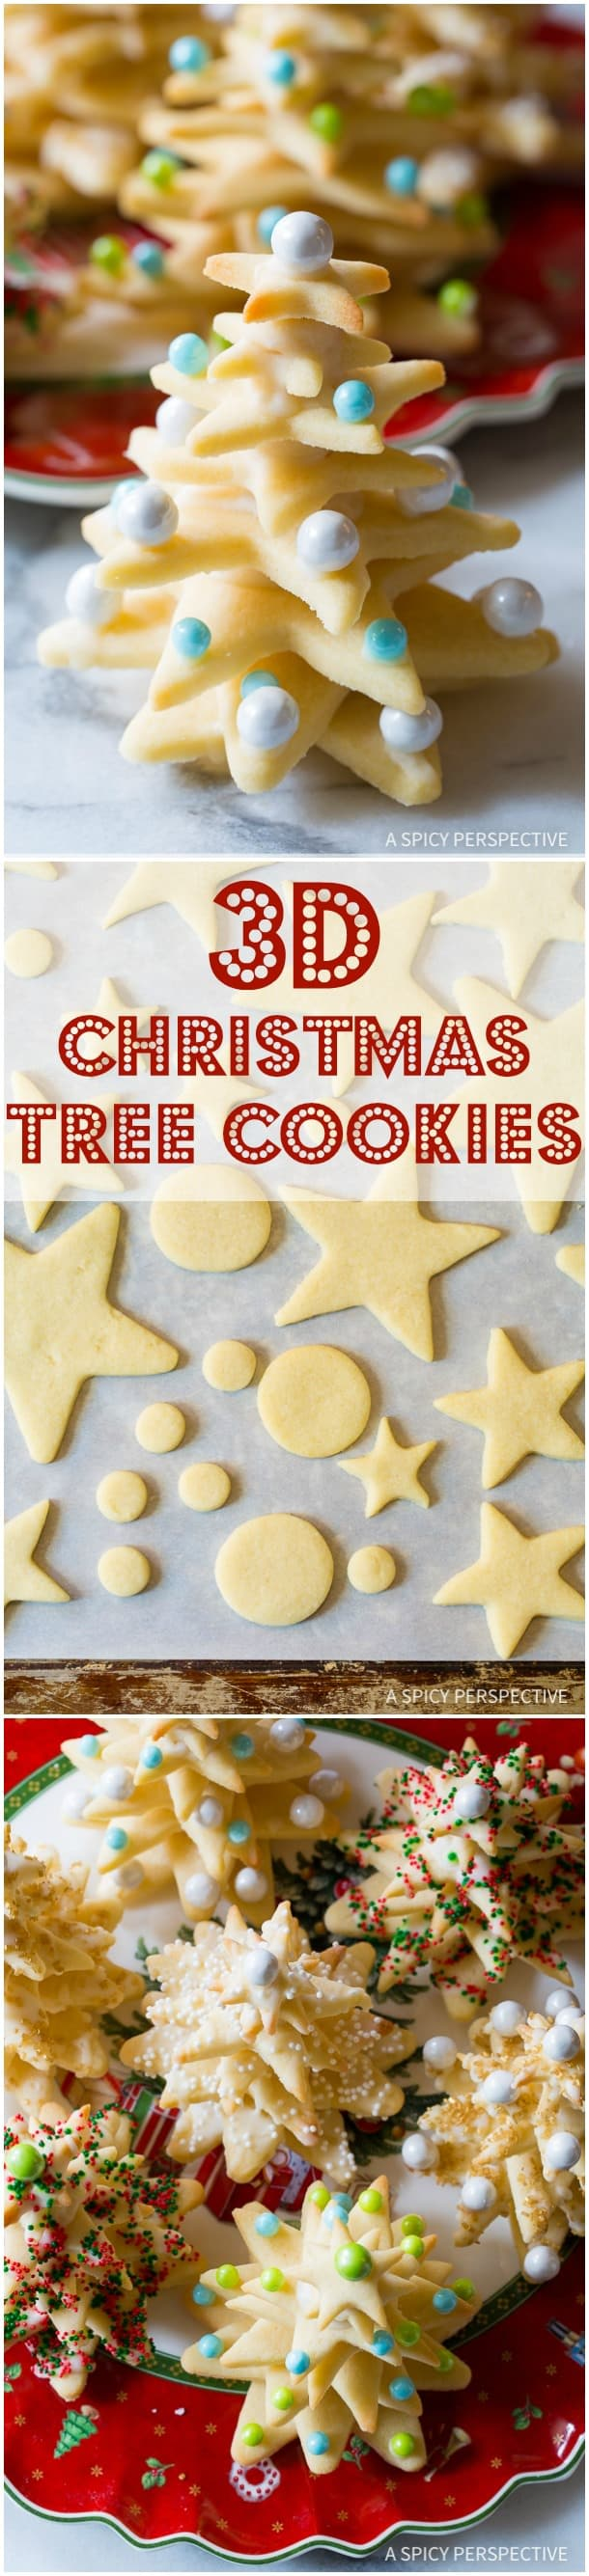 Try these amazing 3D Christmas Tree Cookies on ASpicyPerspective that make fantastic edible gifts!